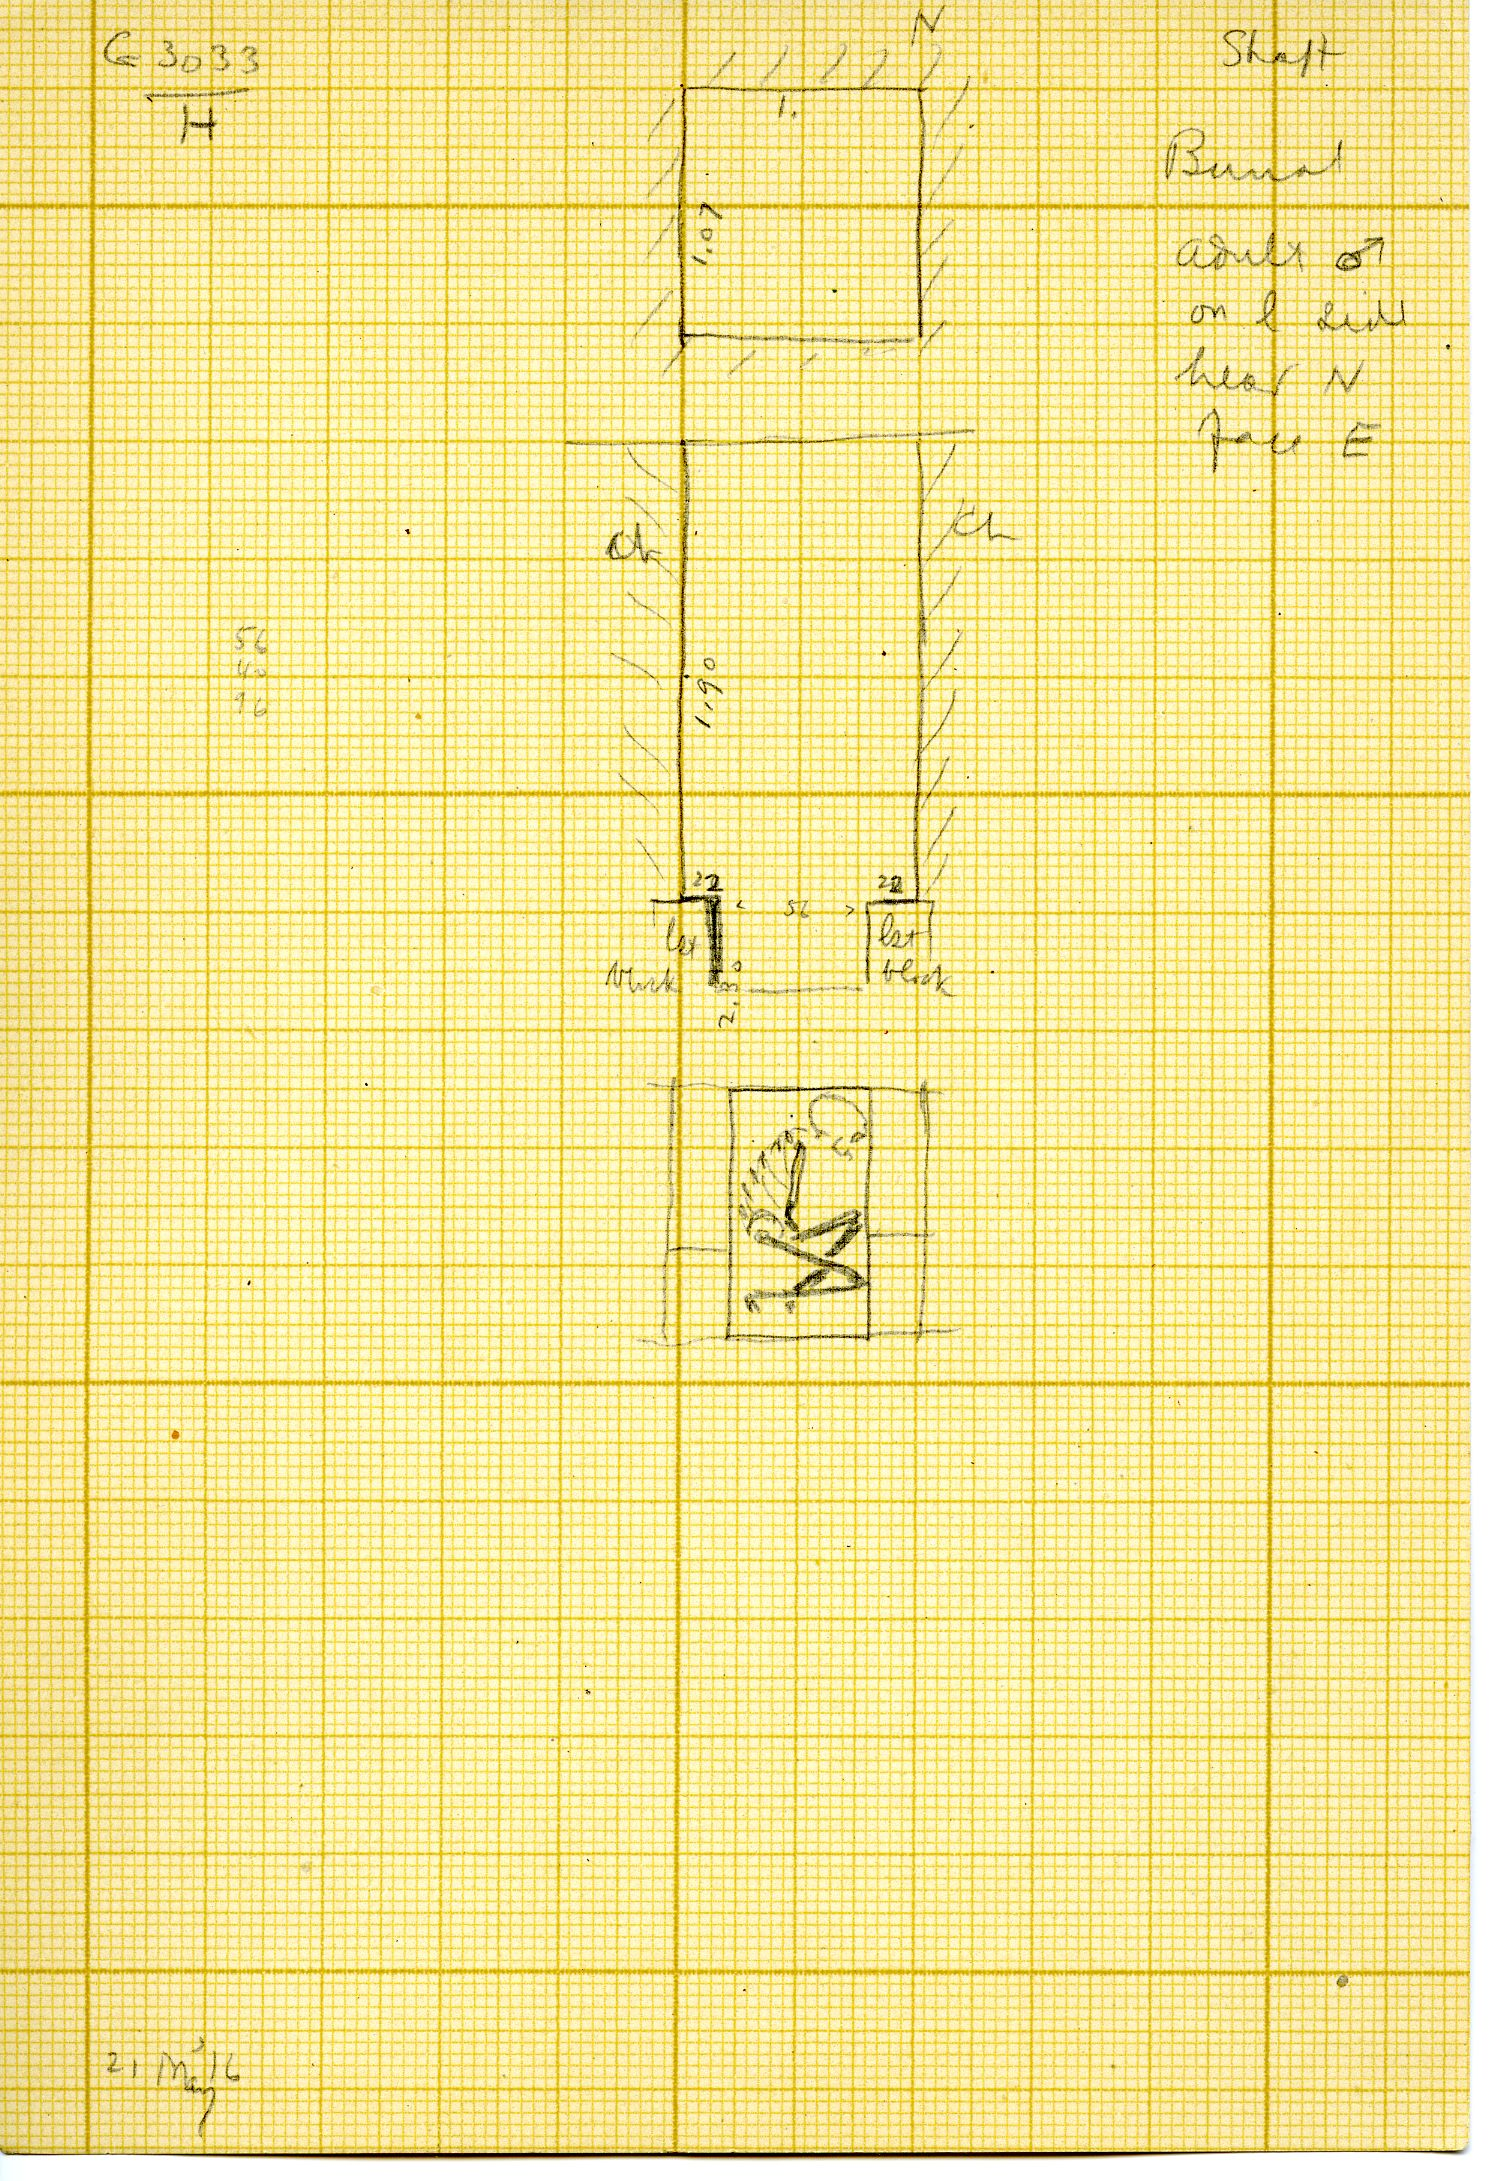 Maps and plans: G 3033, Shaft H